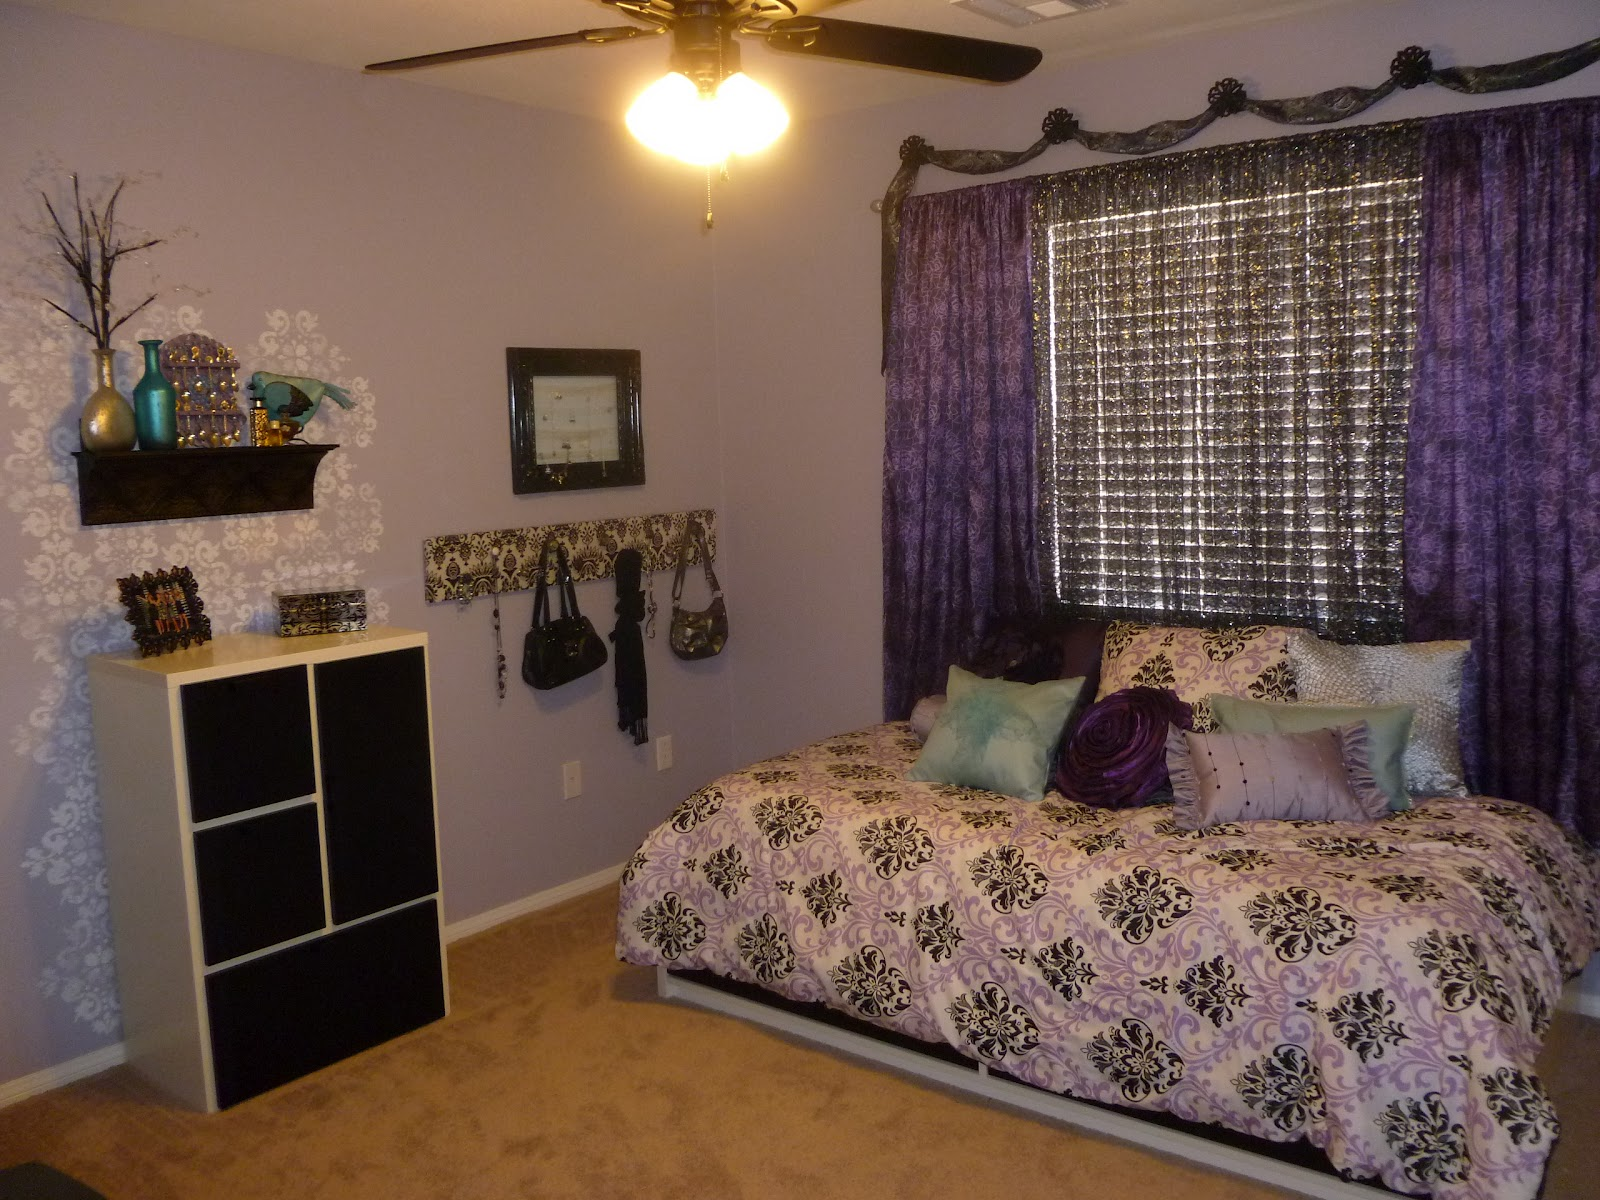 Vintage Room Ideas For Teenage Girls modern vintage bedroom ideas. 20 vintage bedrooms inspiring